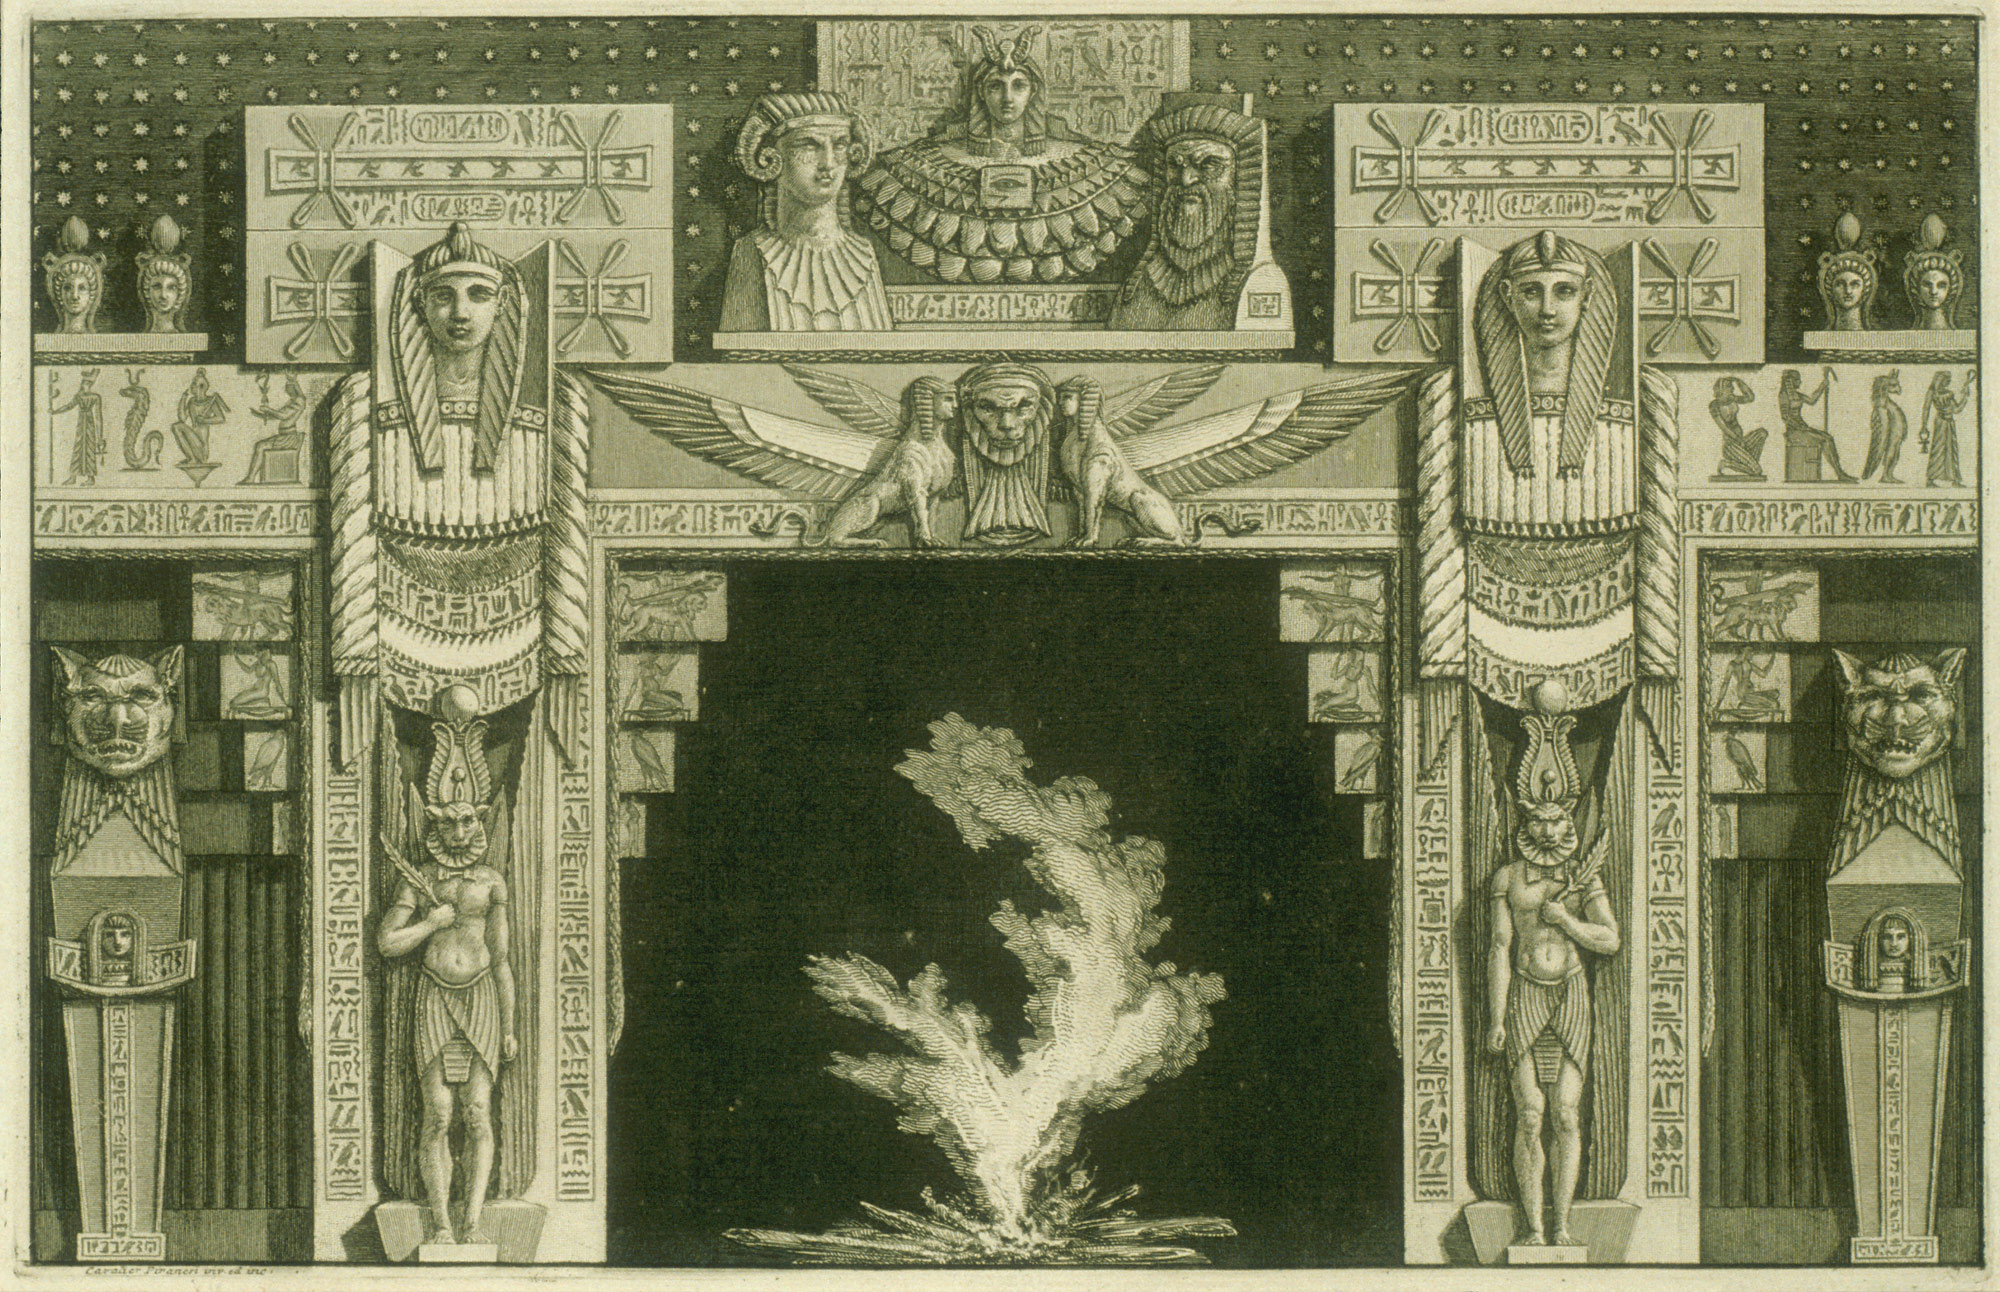 Chimneypiece in the Egyptian style, from Diverse Maniere dadornare i cammini (...) (Different Ways of ornamenting chimneypieces and all other parts of houses)